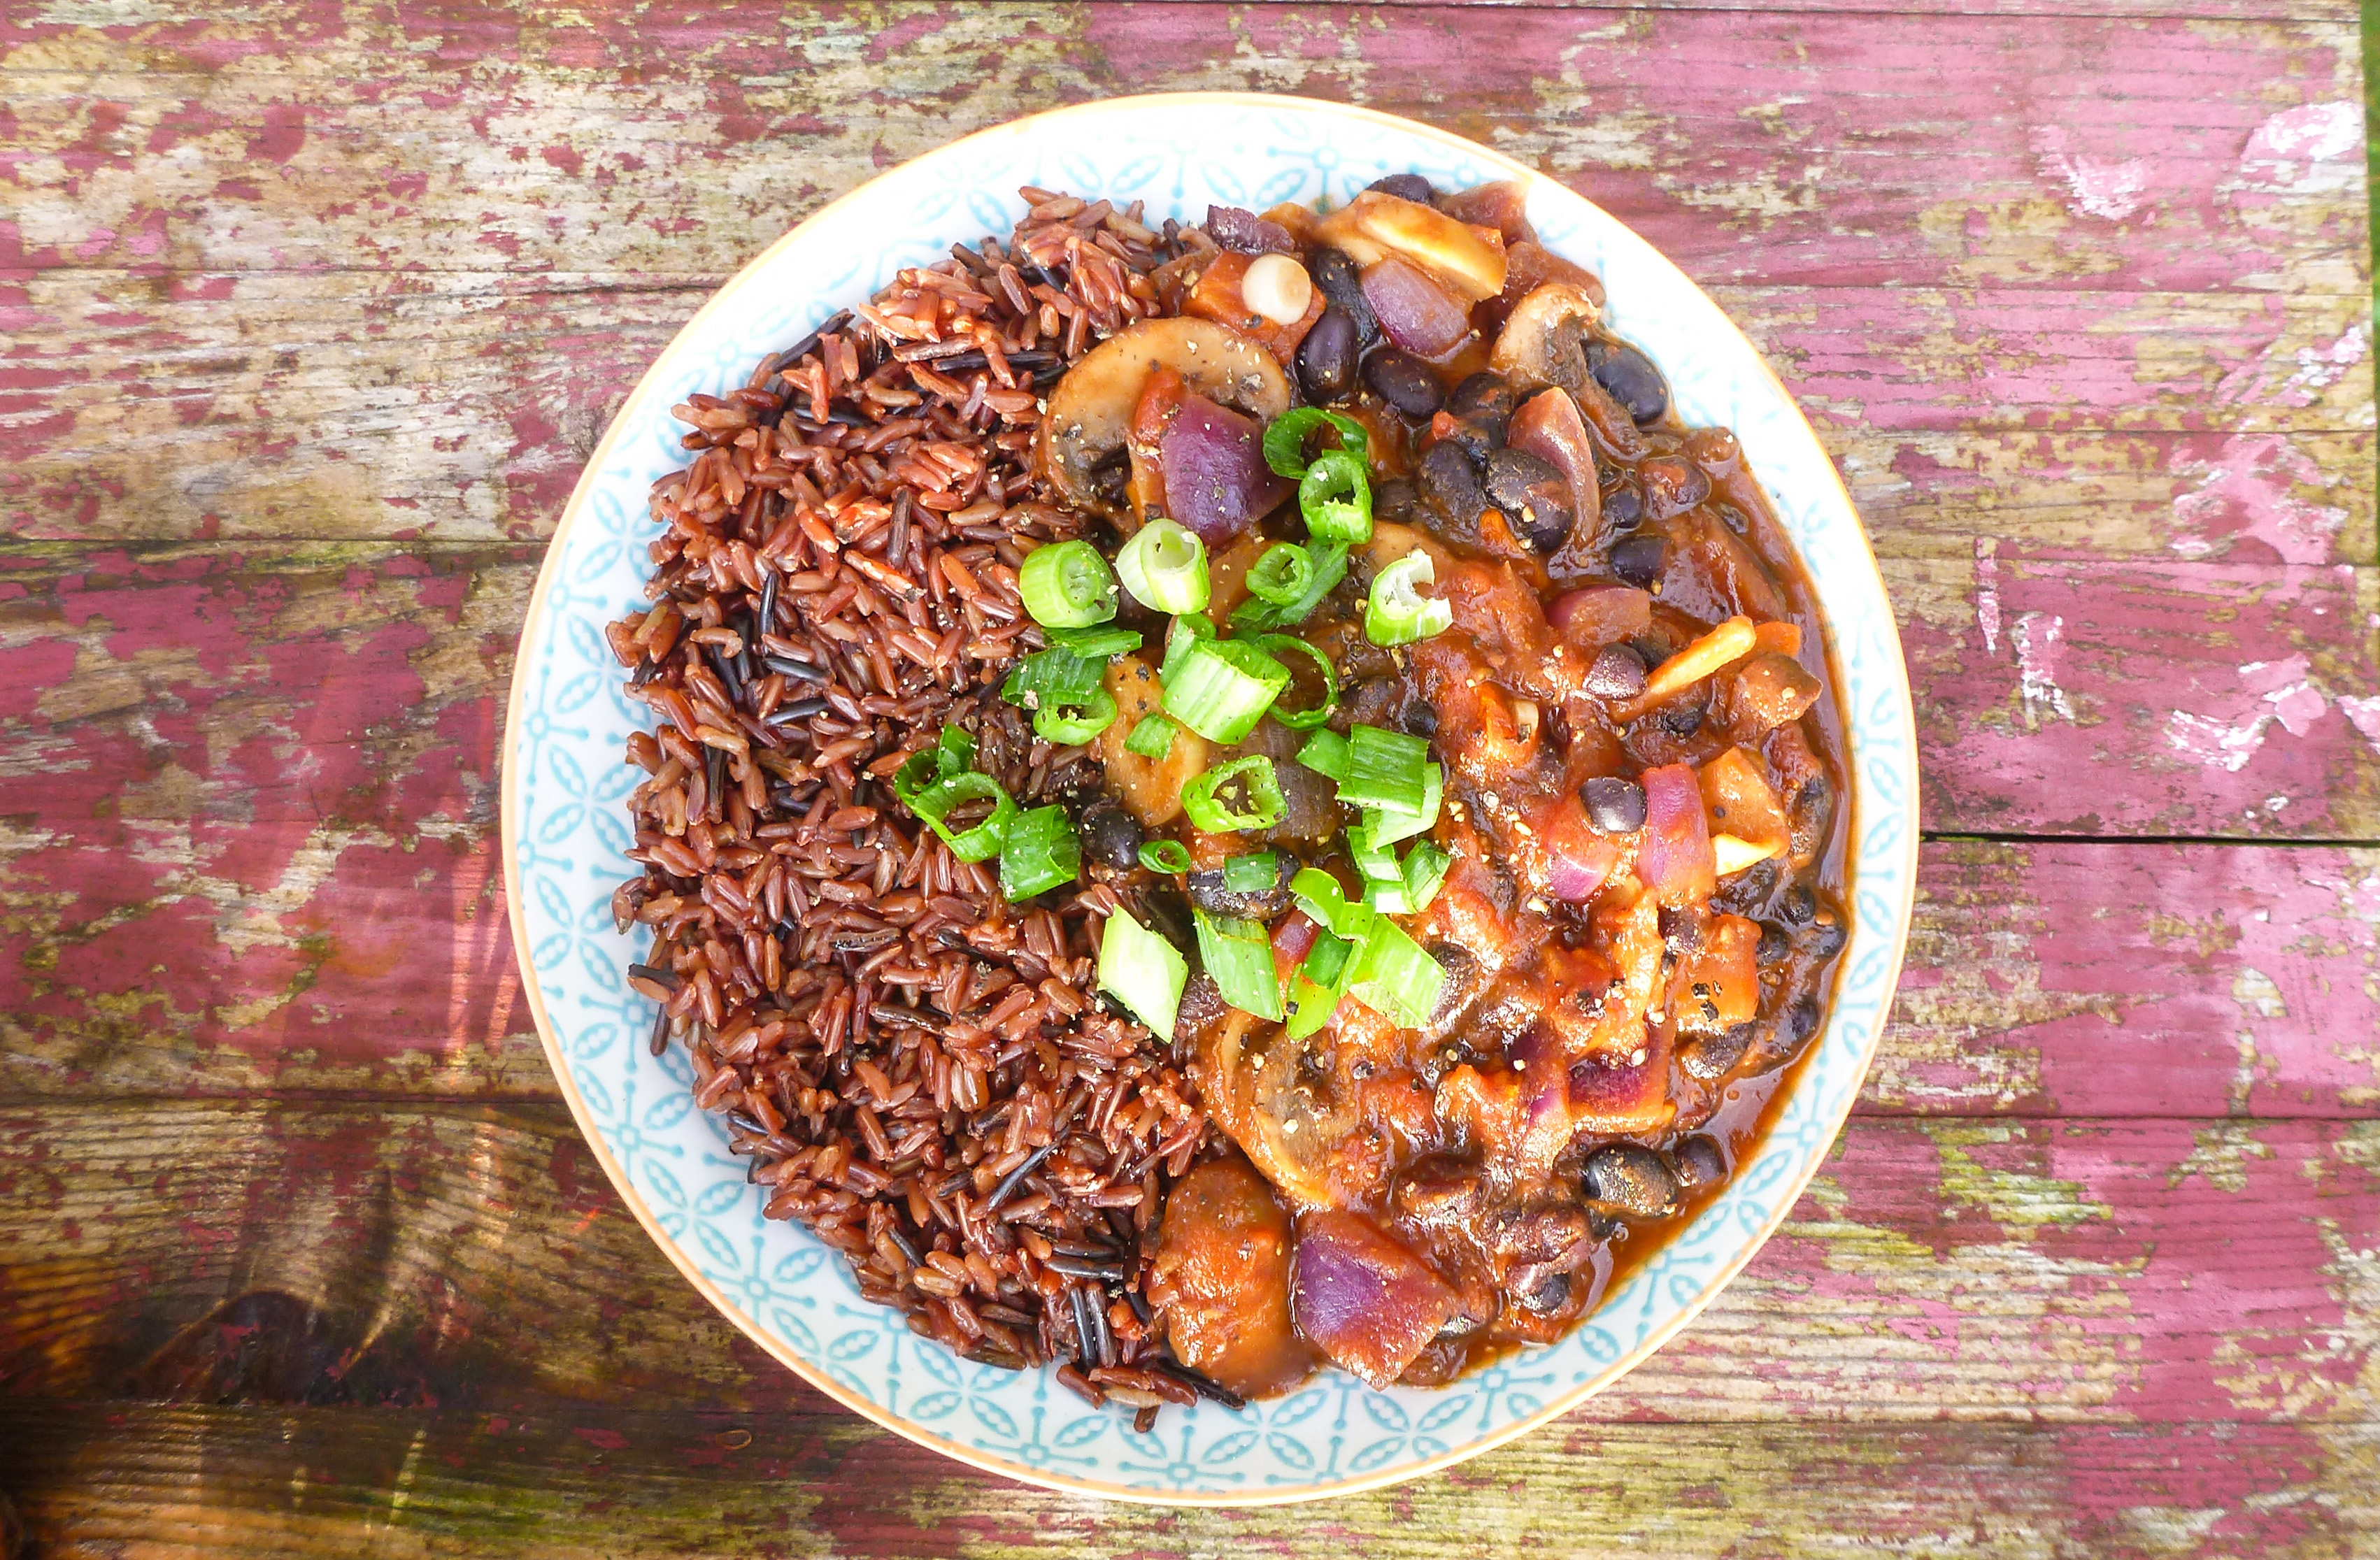 Mushroom, Clove and Black Bean Healing Chili